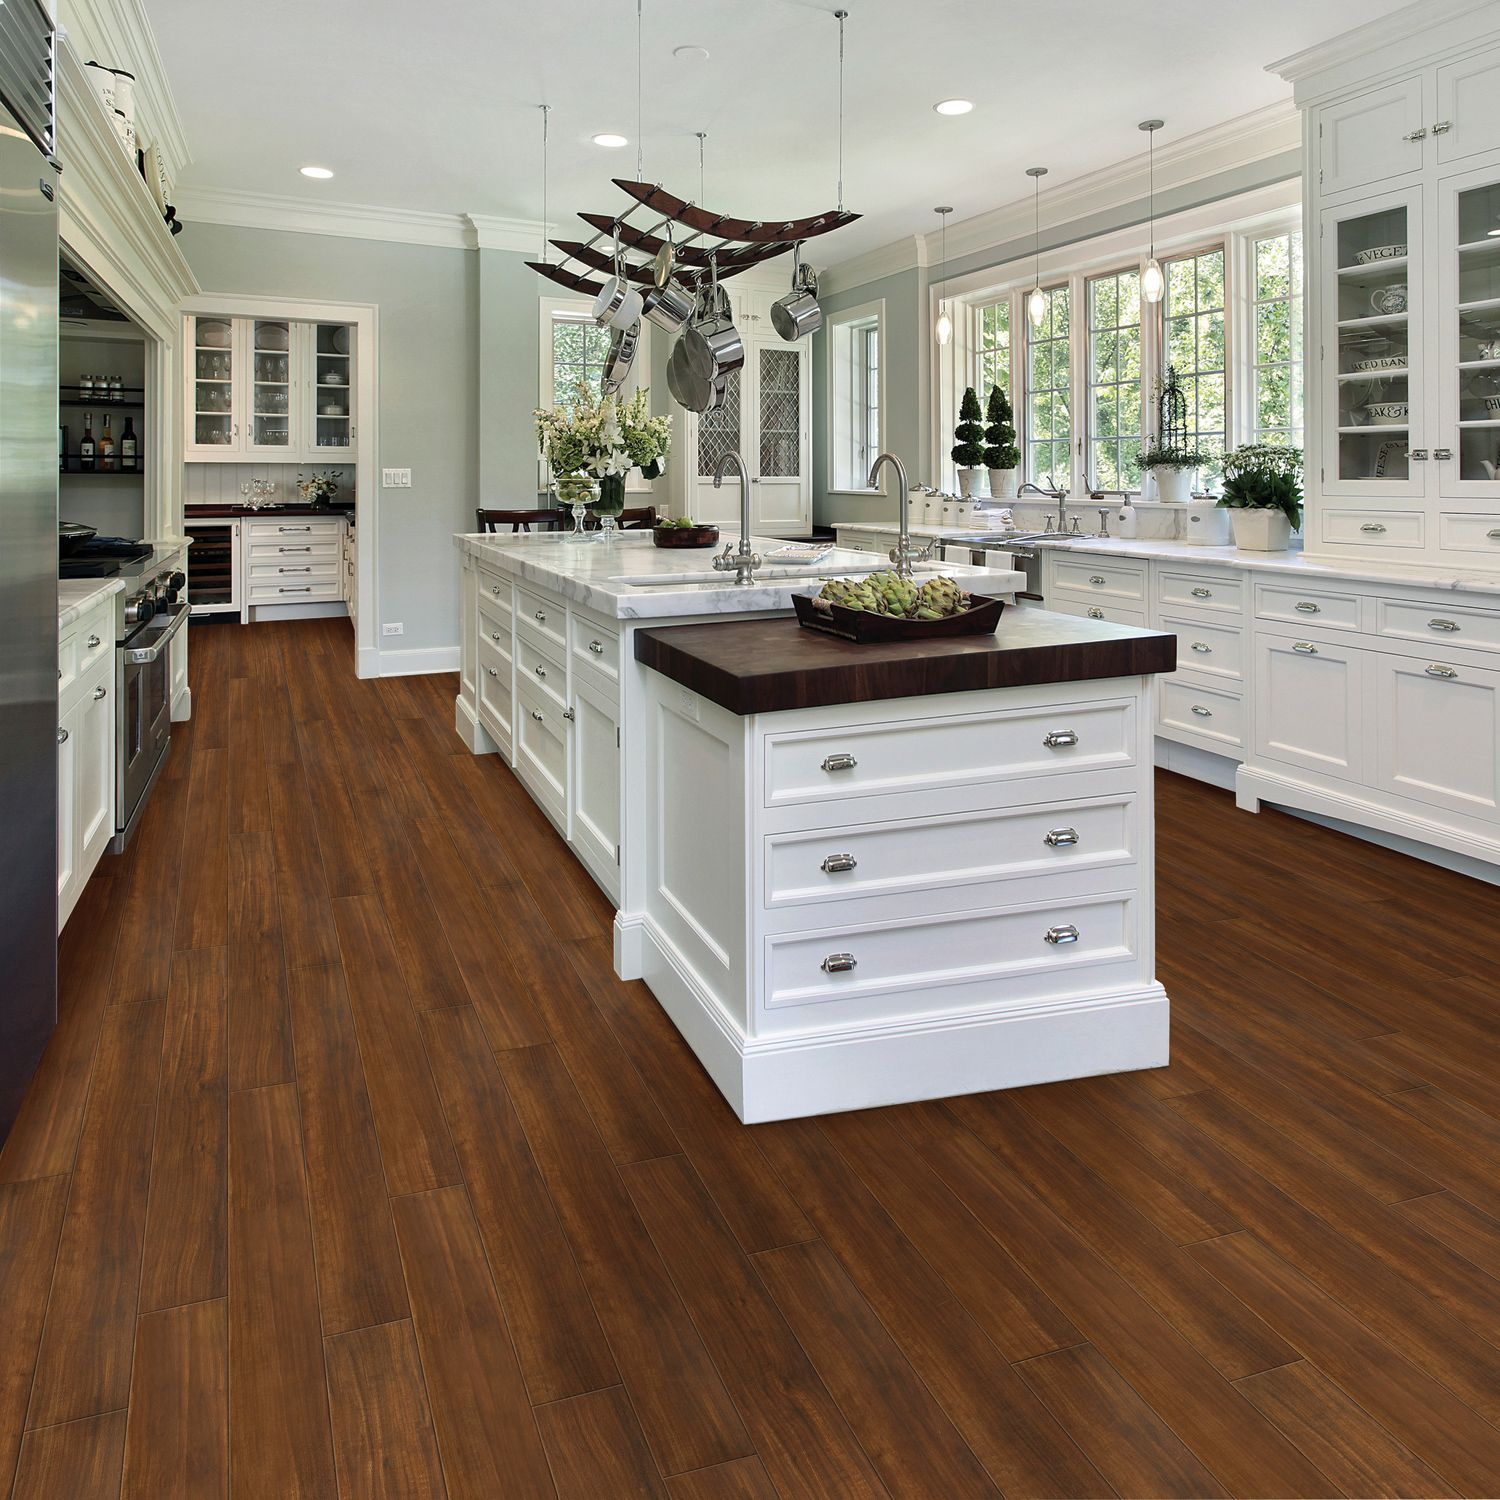 Walnut Floor Kitchen Select Surfaces American Walnut Click Luxury Vinyl Plank Flooring